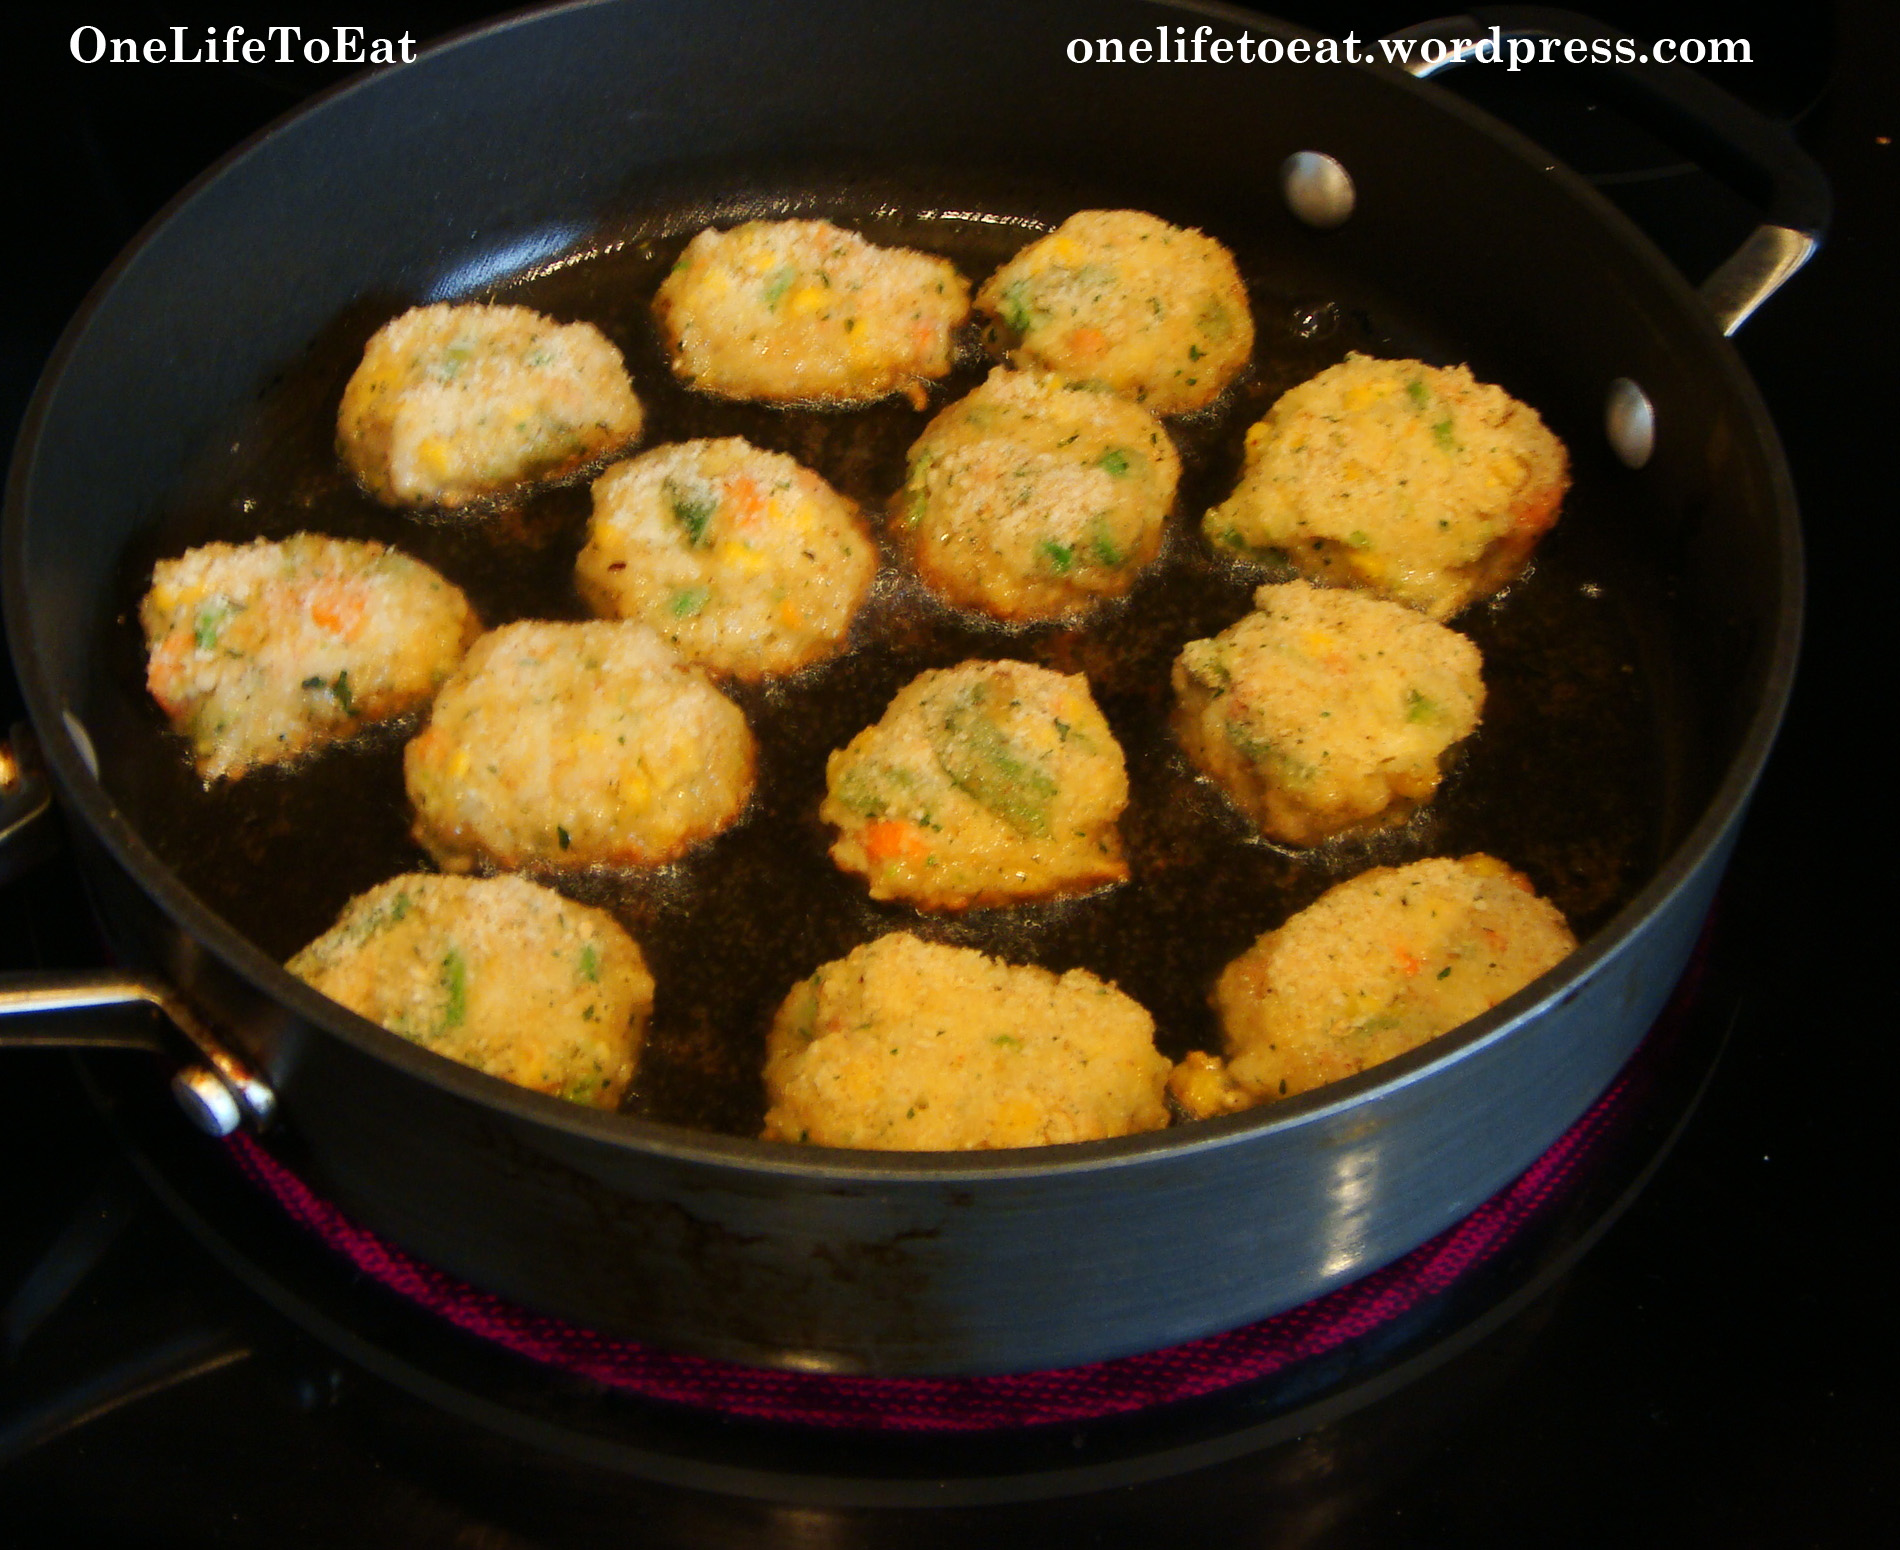 Vegetable Patties One Life To Eat